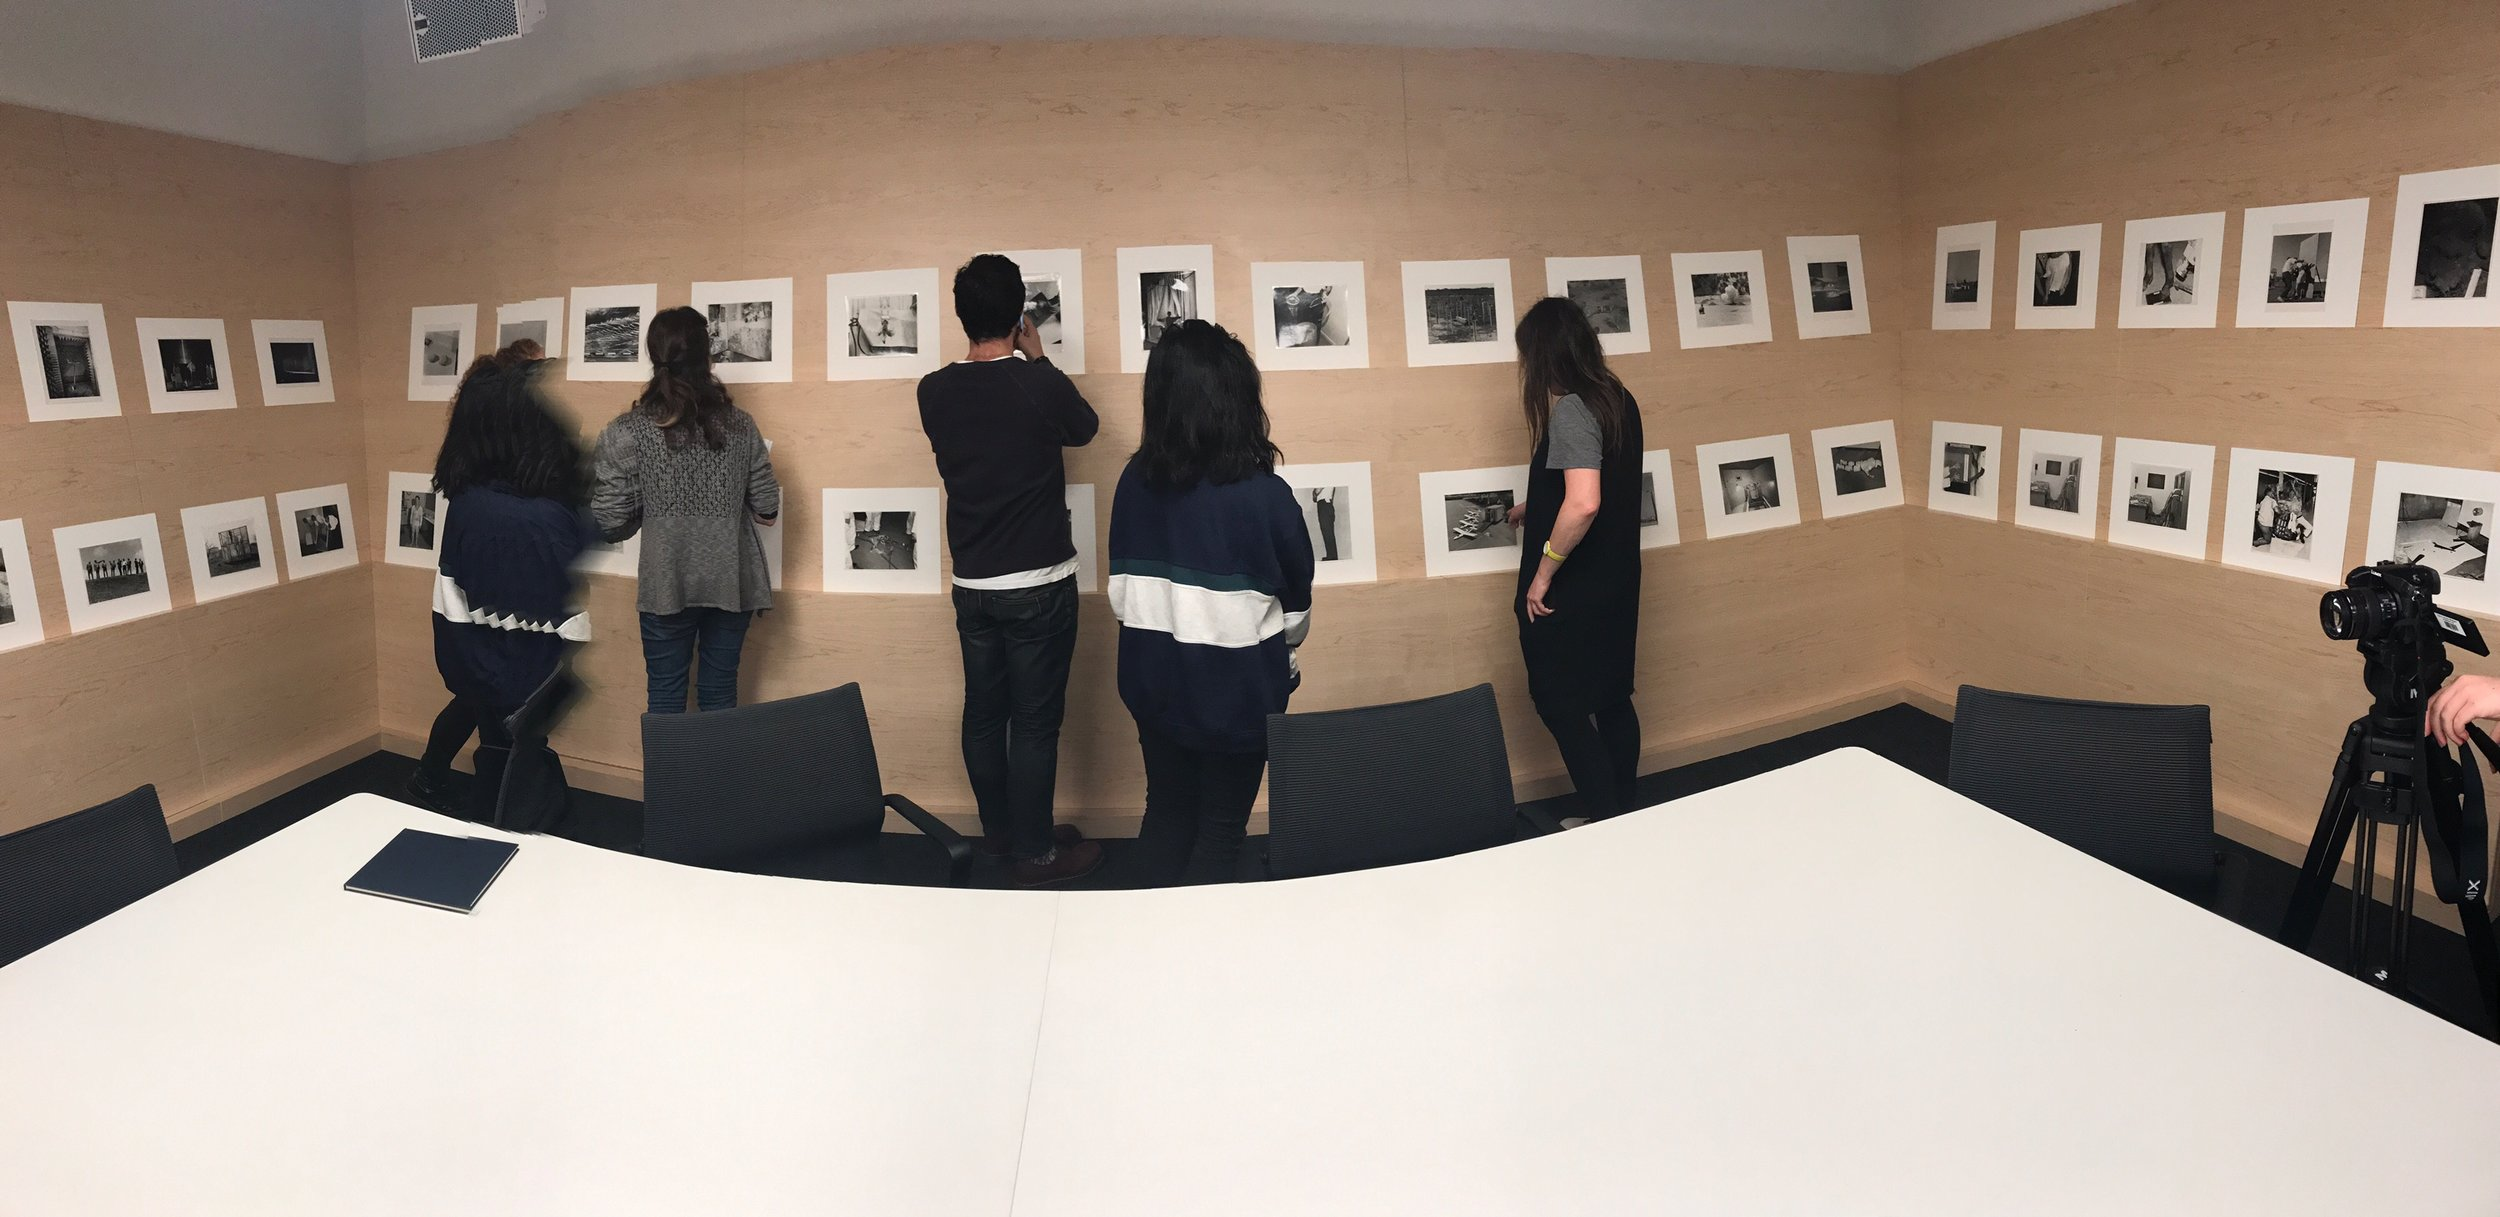 BACK AT SFMOMA STUDY CENTER LOOKING AT THE ENTIRE SULTAN/MANDEL EVIDENCE EDITION